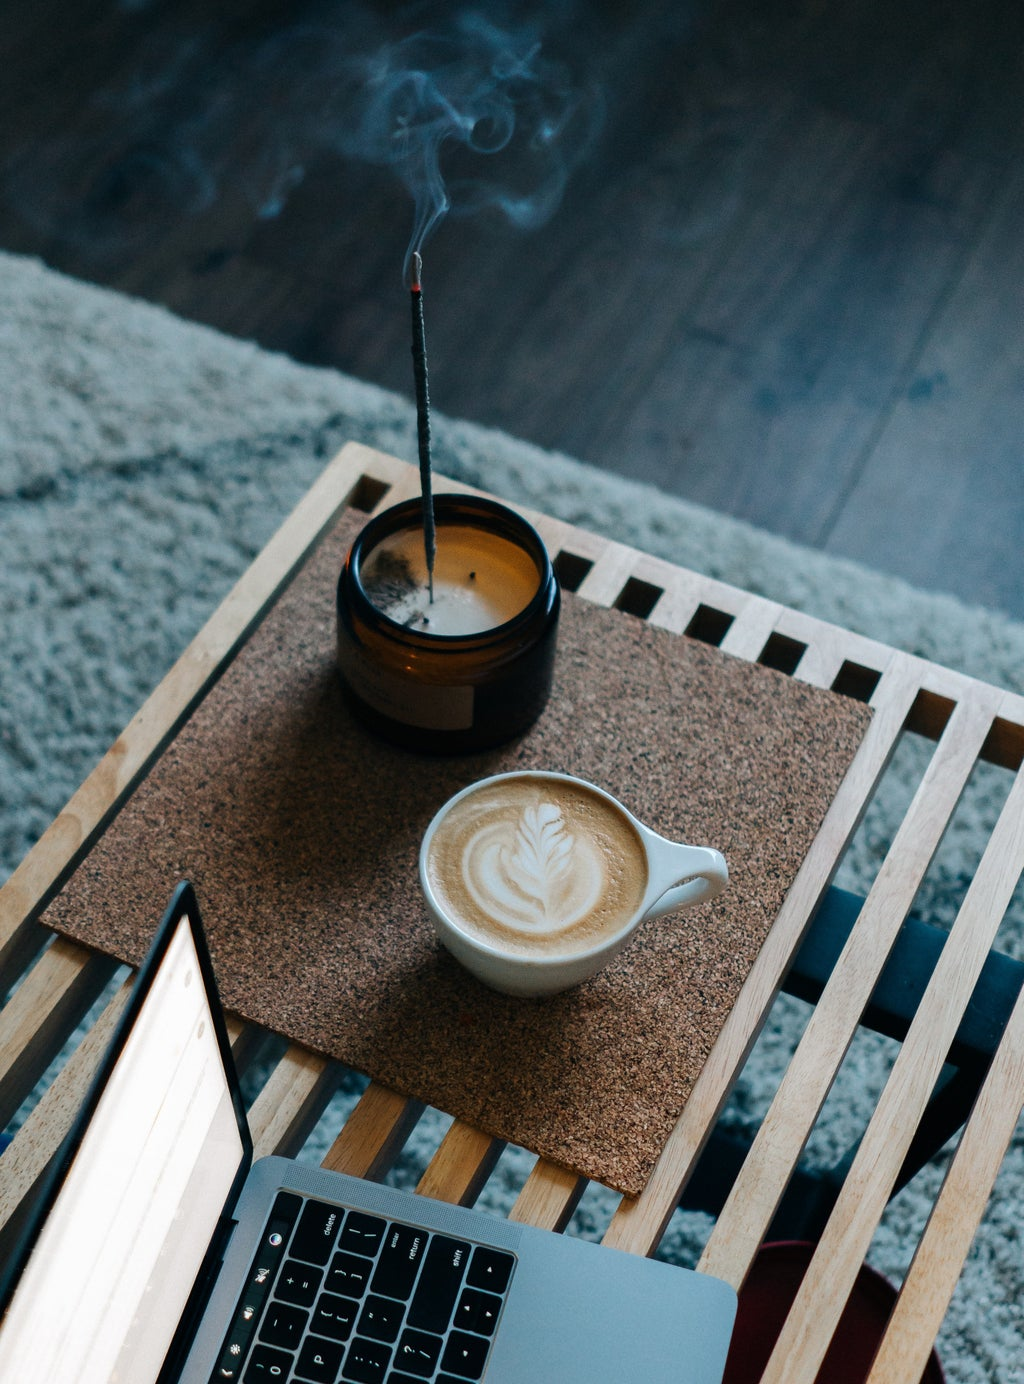 Cappuccino and candle next to laptop